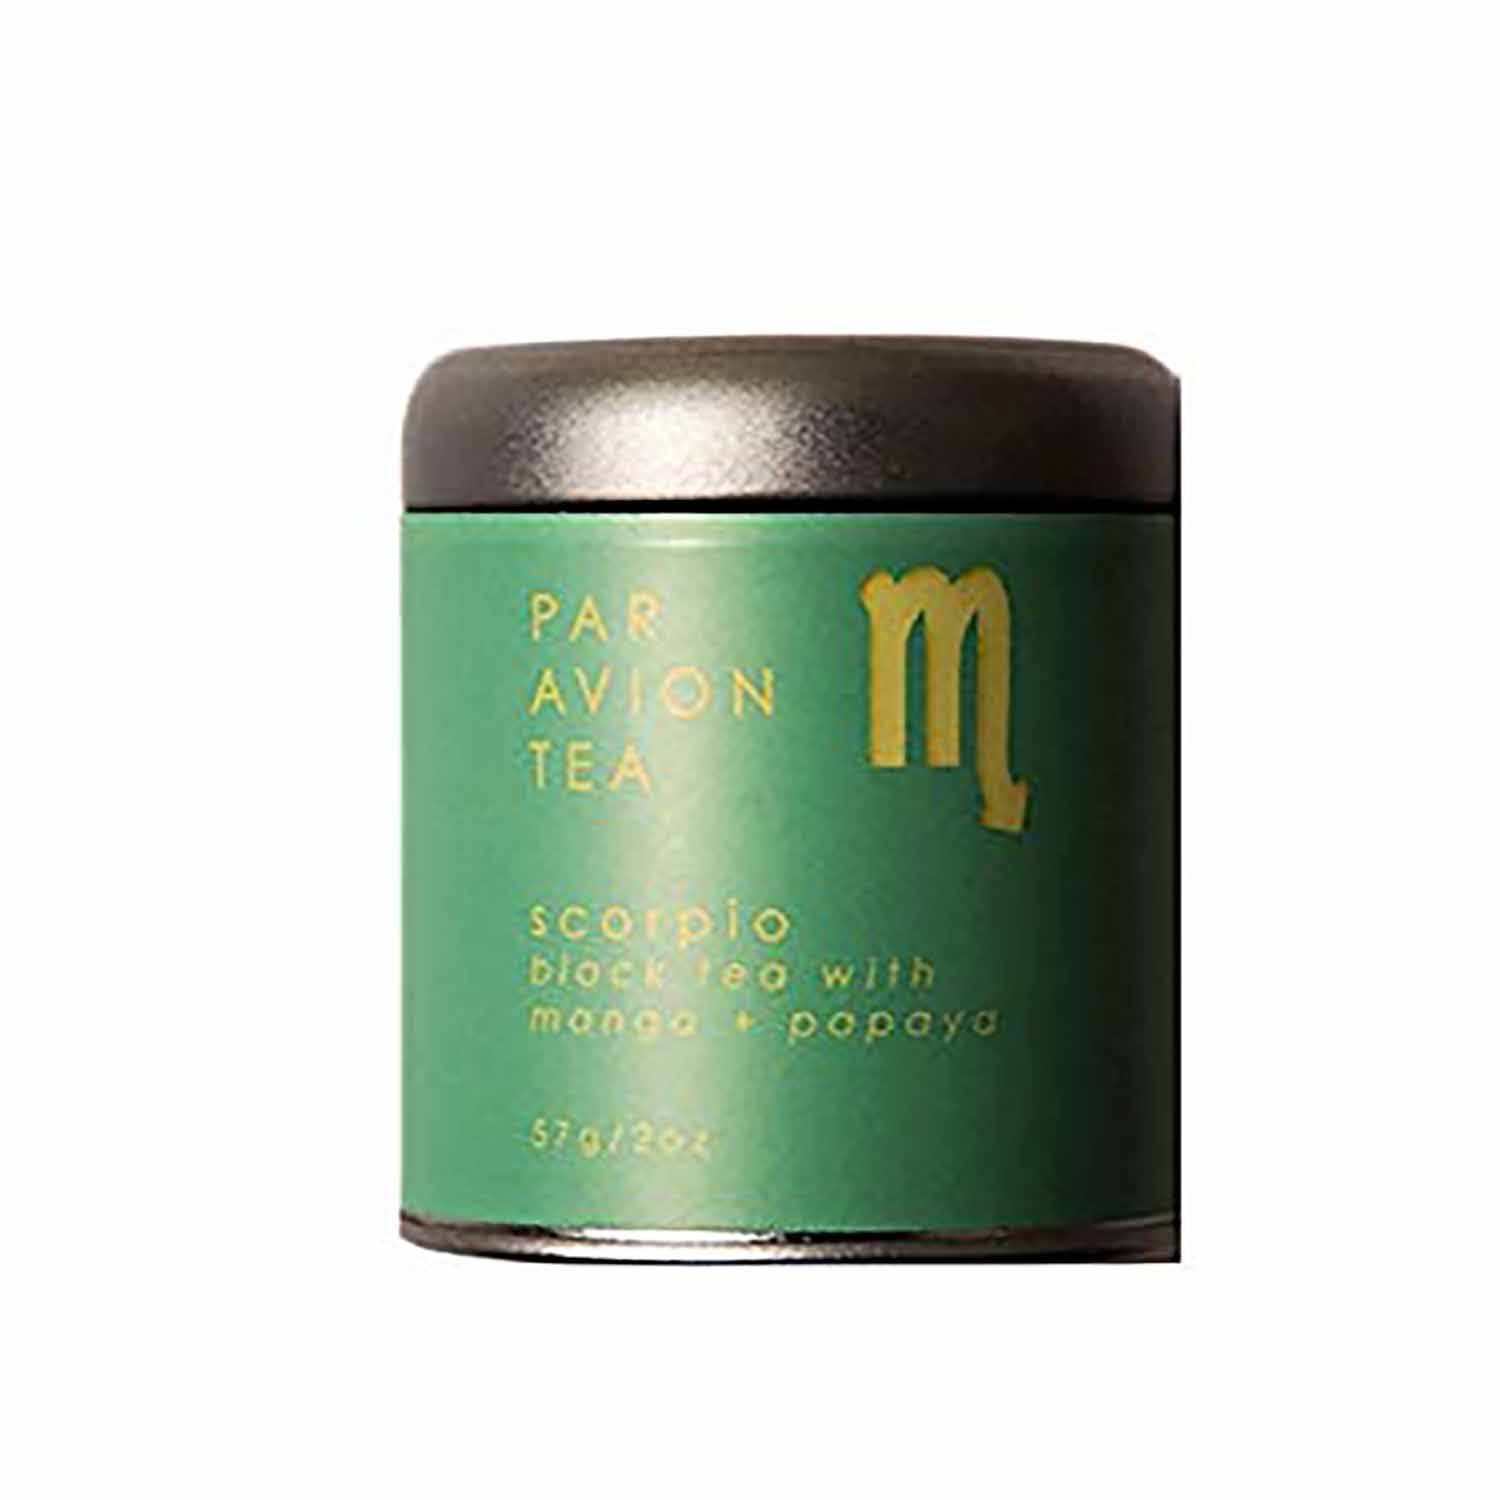 astrology gifts par avion tea